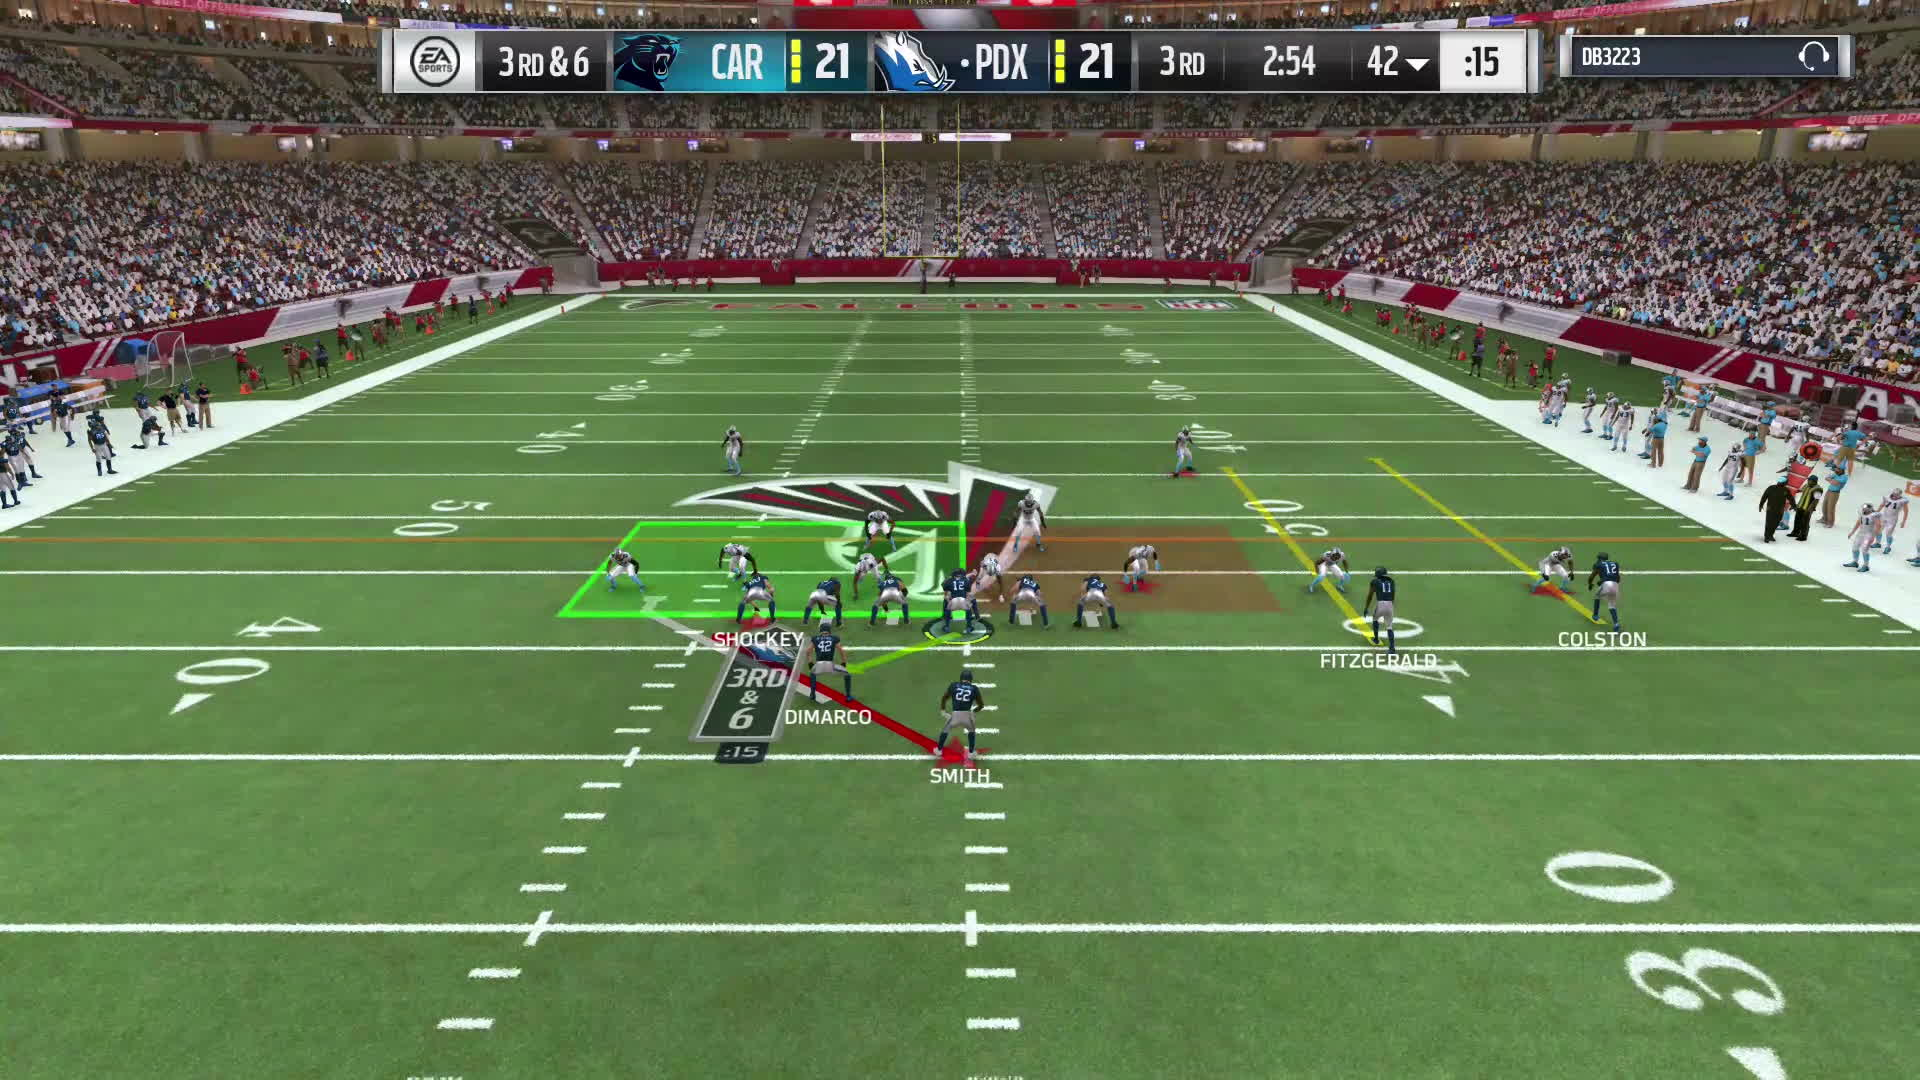 maddenultimateteam, Reasons why Emmitt Smith is my favorite RB in MUT thus far! GIFs